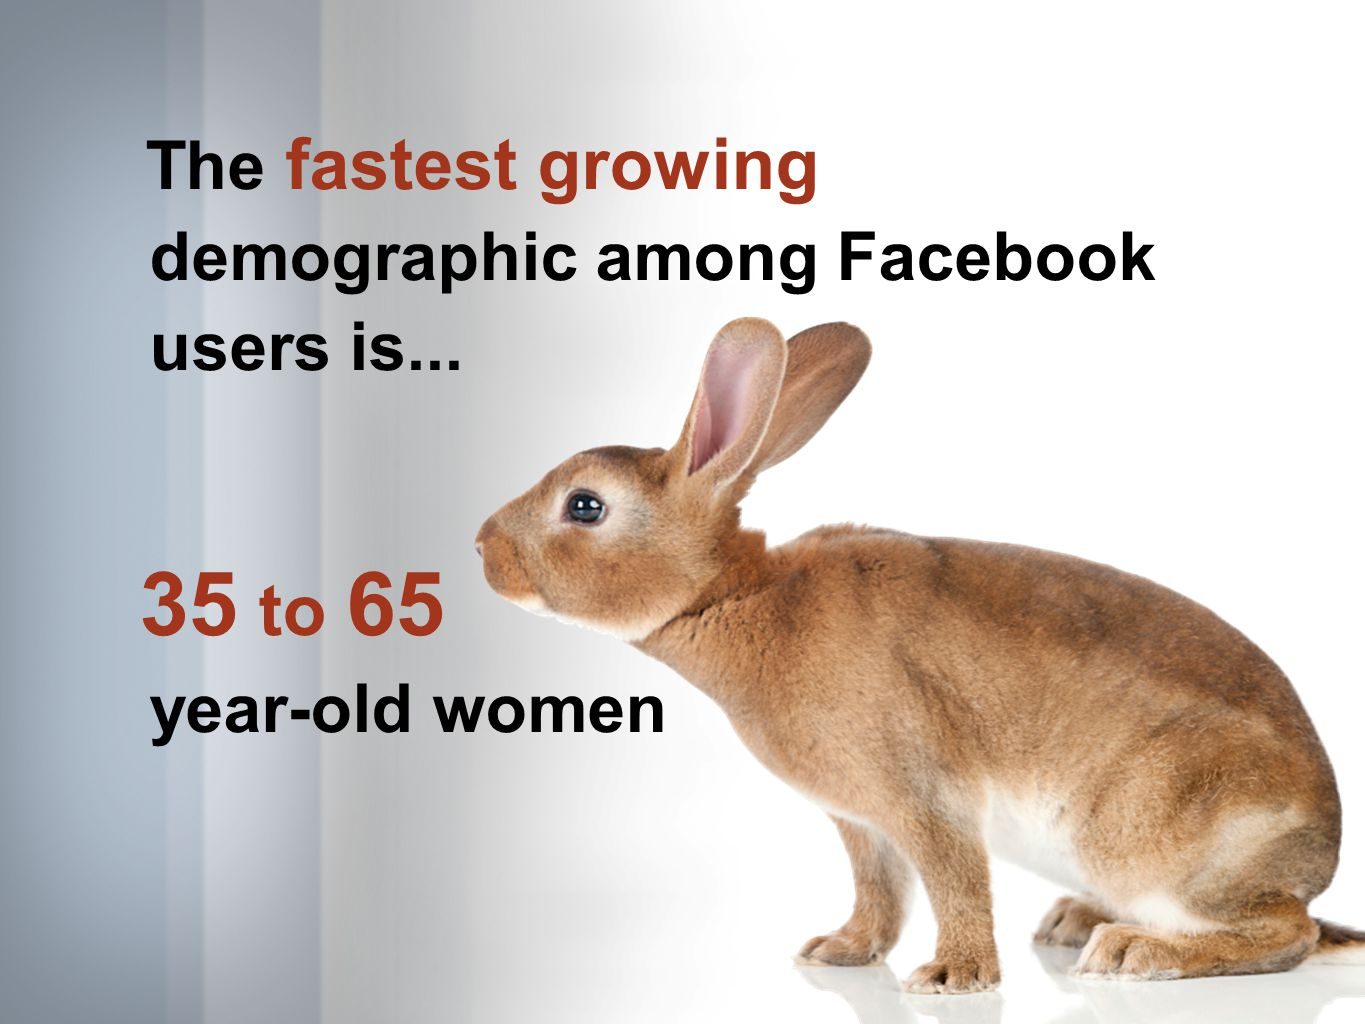 The fastest growing demographic among Facebook users is to 65 year-old women